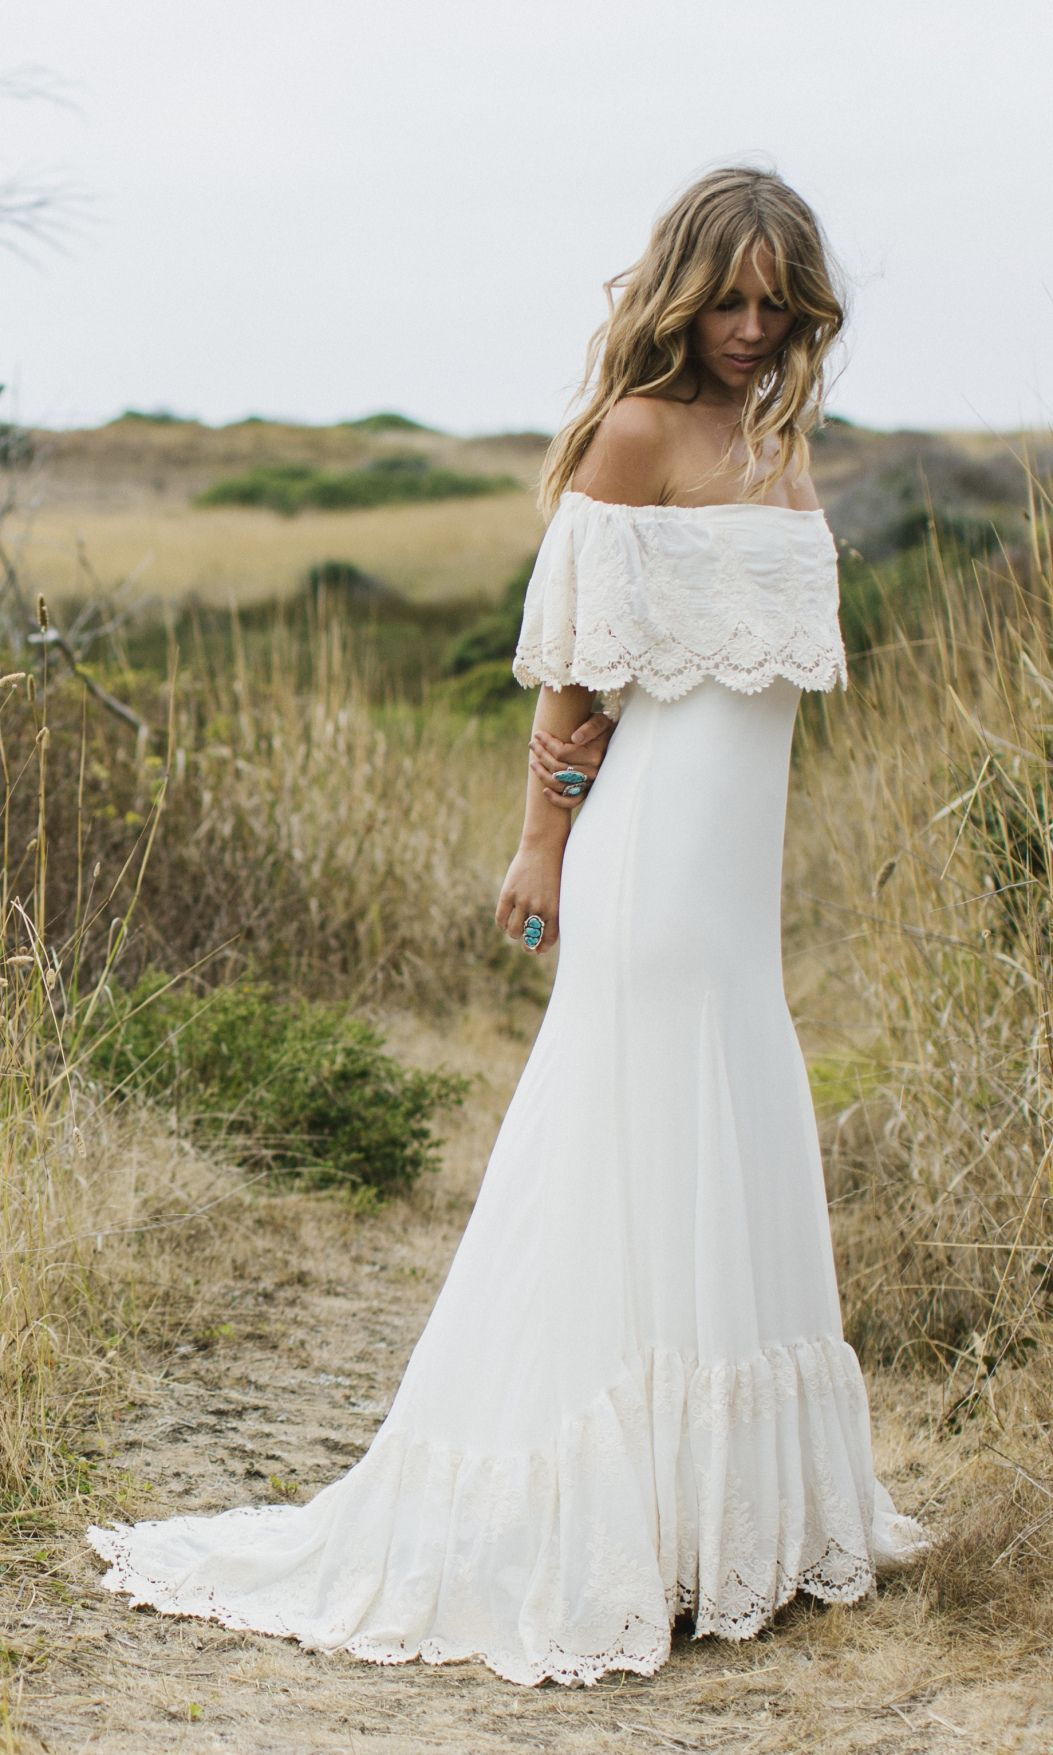 77 Stretchy Wedding Dress Country Dresses For Weddings Check More At Http